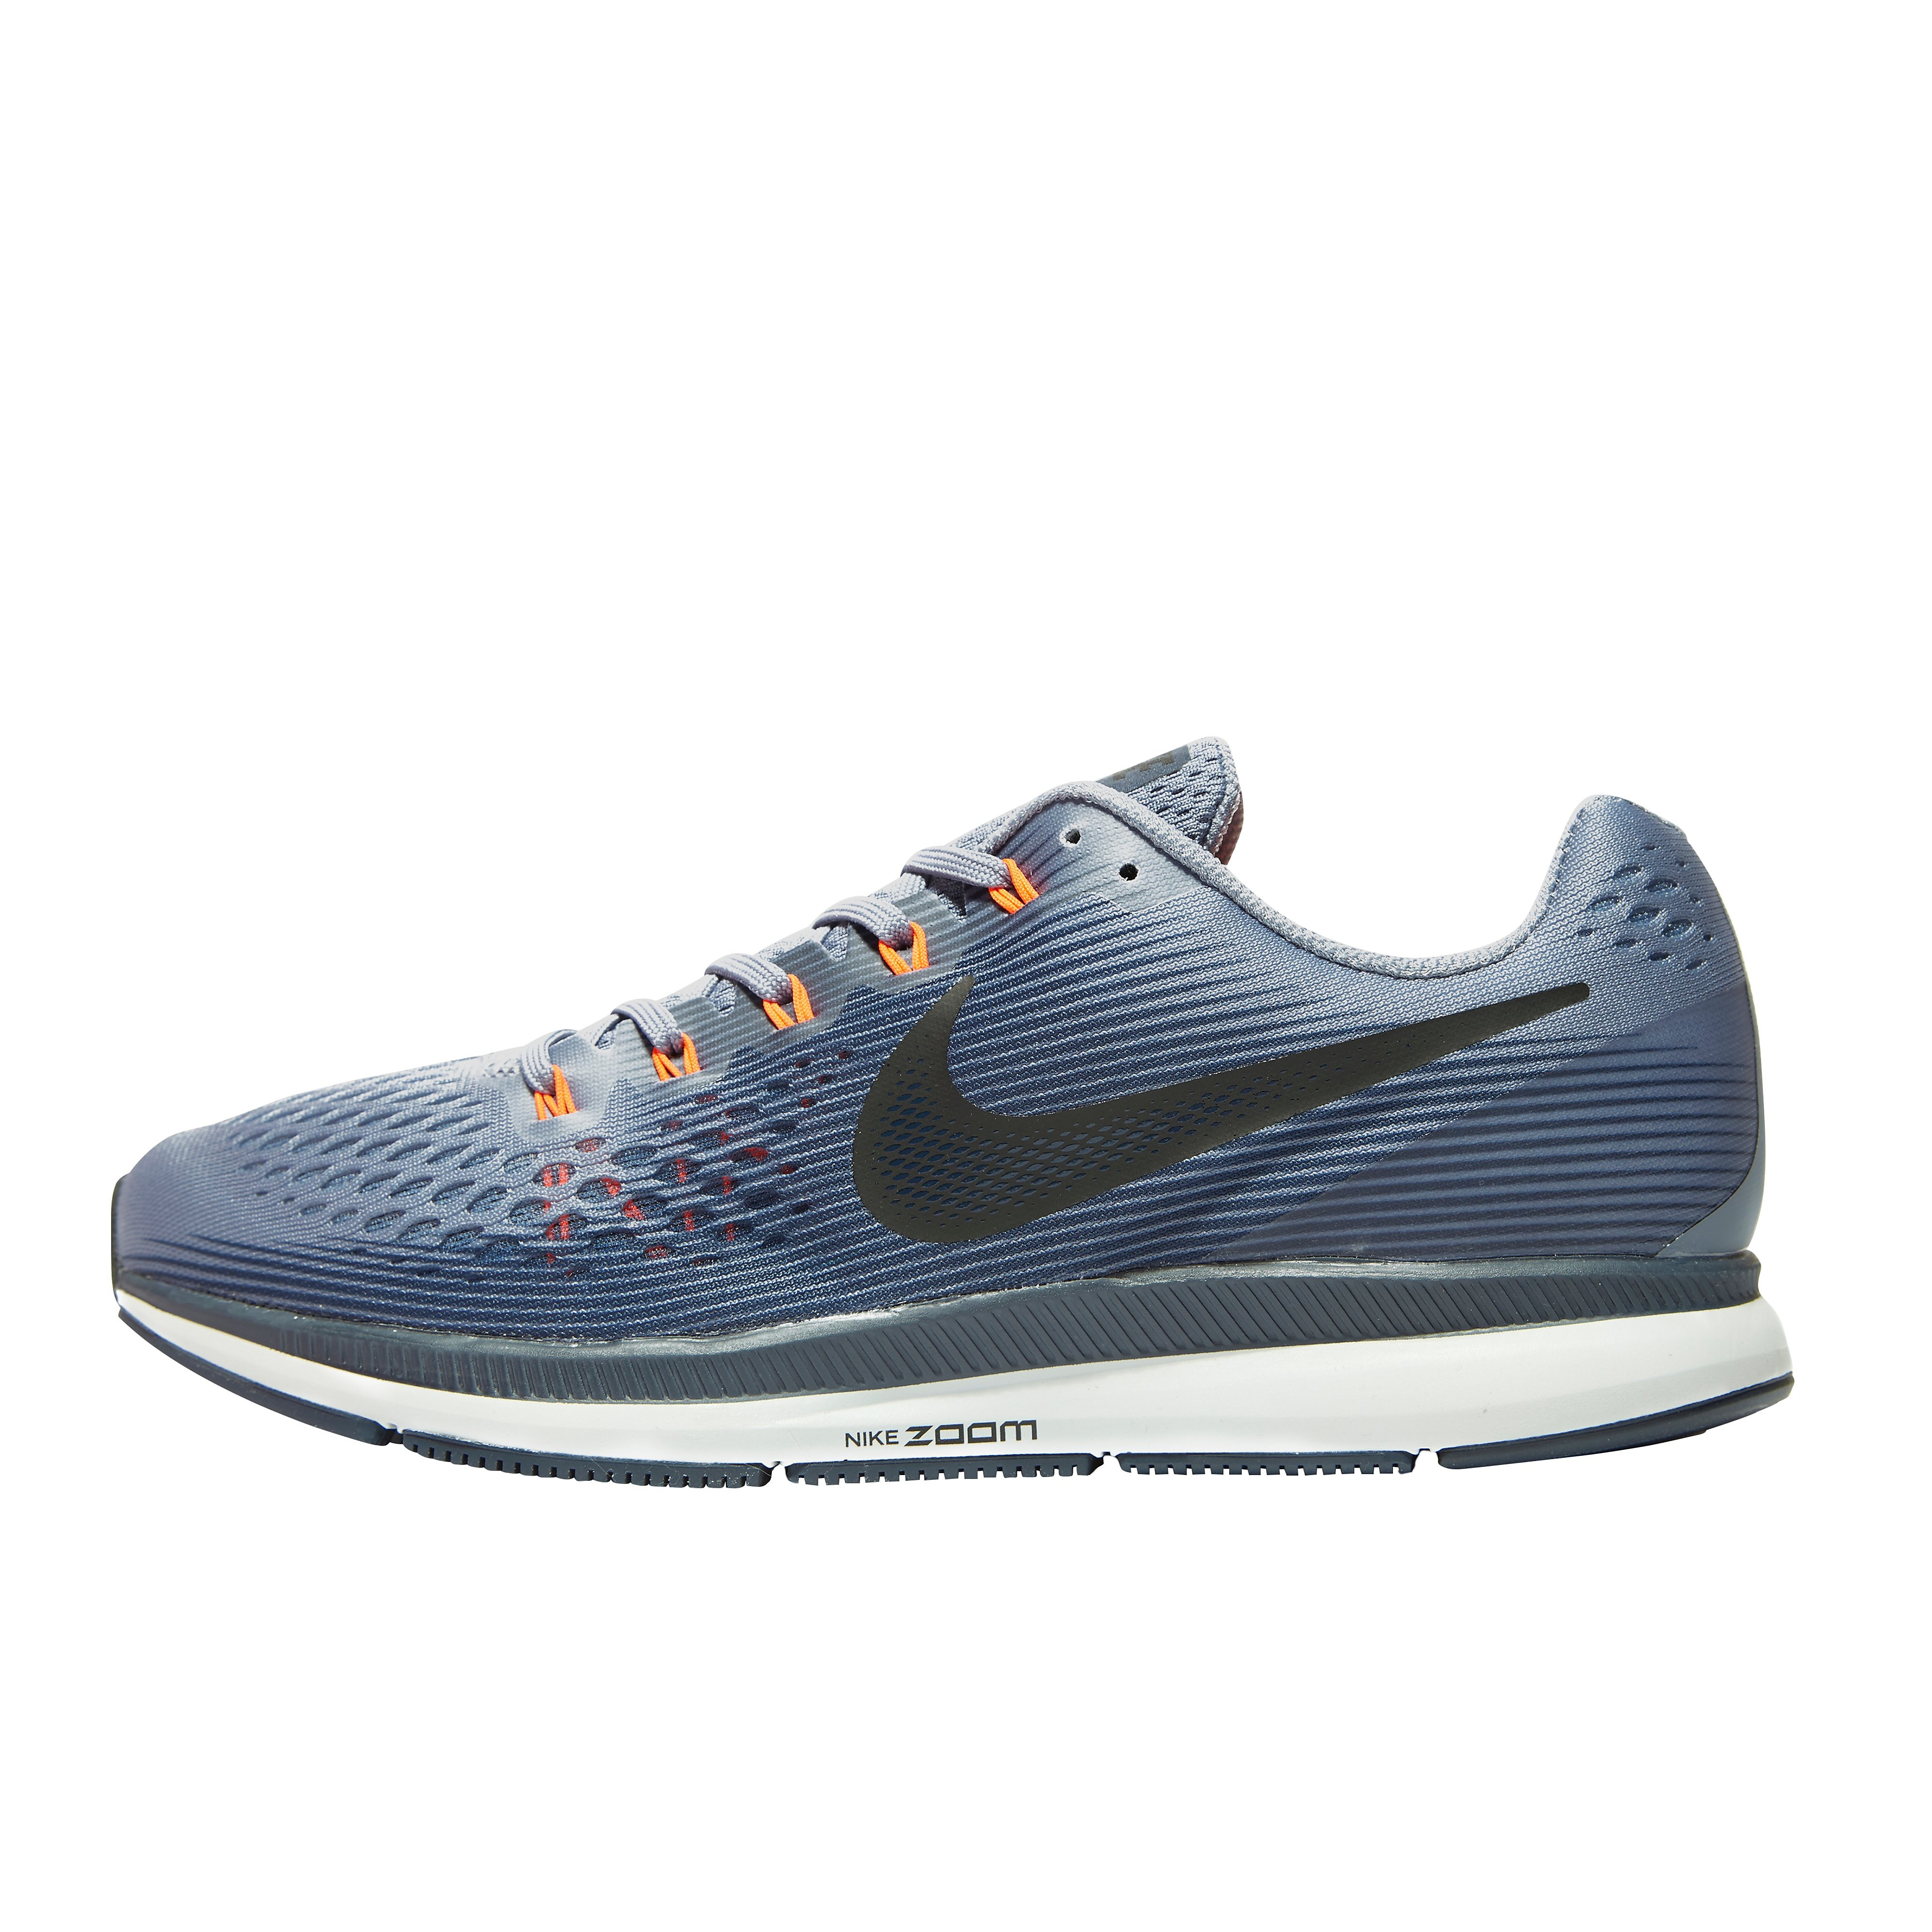 Nike Air Zoom Pegasus 34 Men's Running Shoes